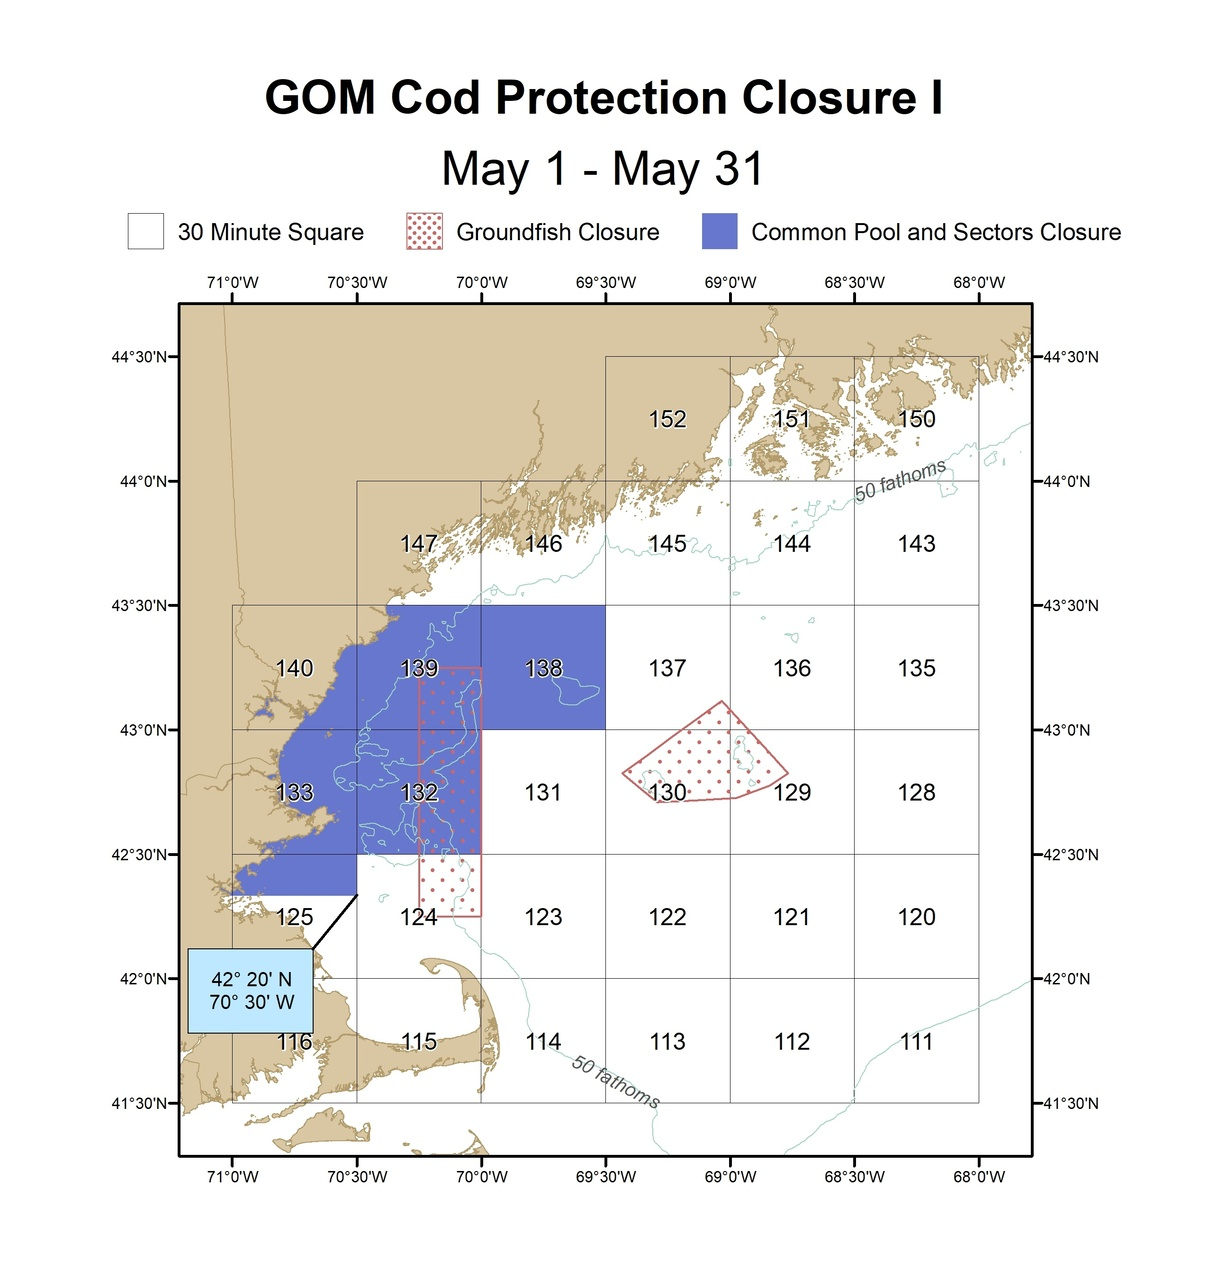 GOM_Cod_Protection_Closure_I.jpg